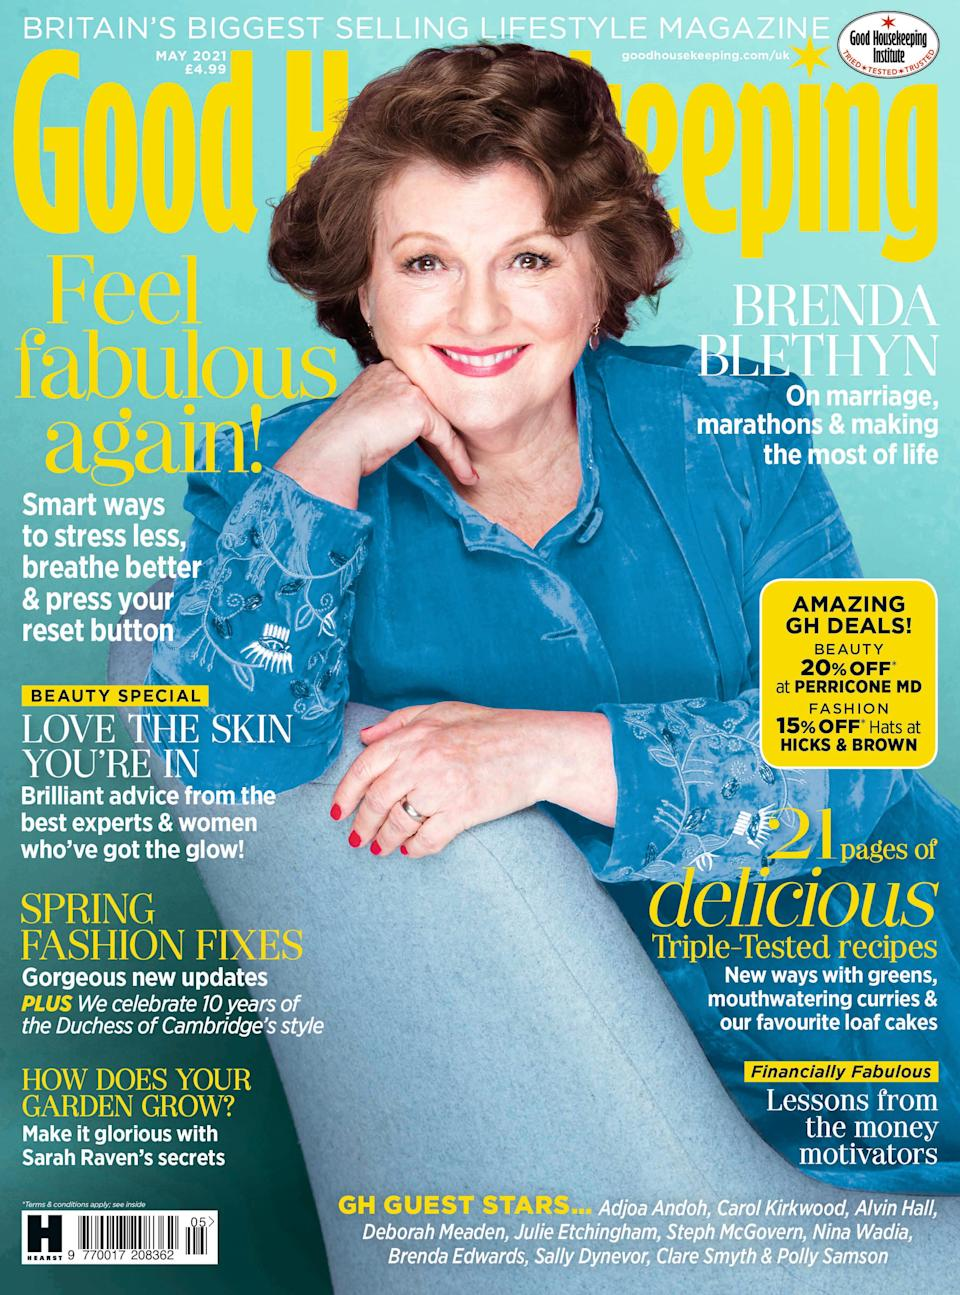 Brenda Blethyn was speaking to Good Housekeeping (Trevor Leighton/Good Housekeeping)